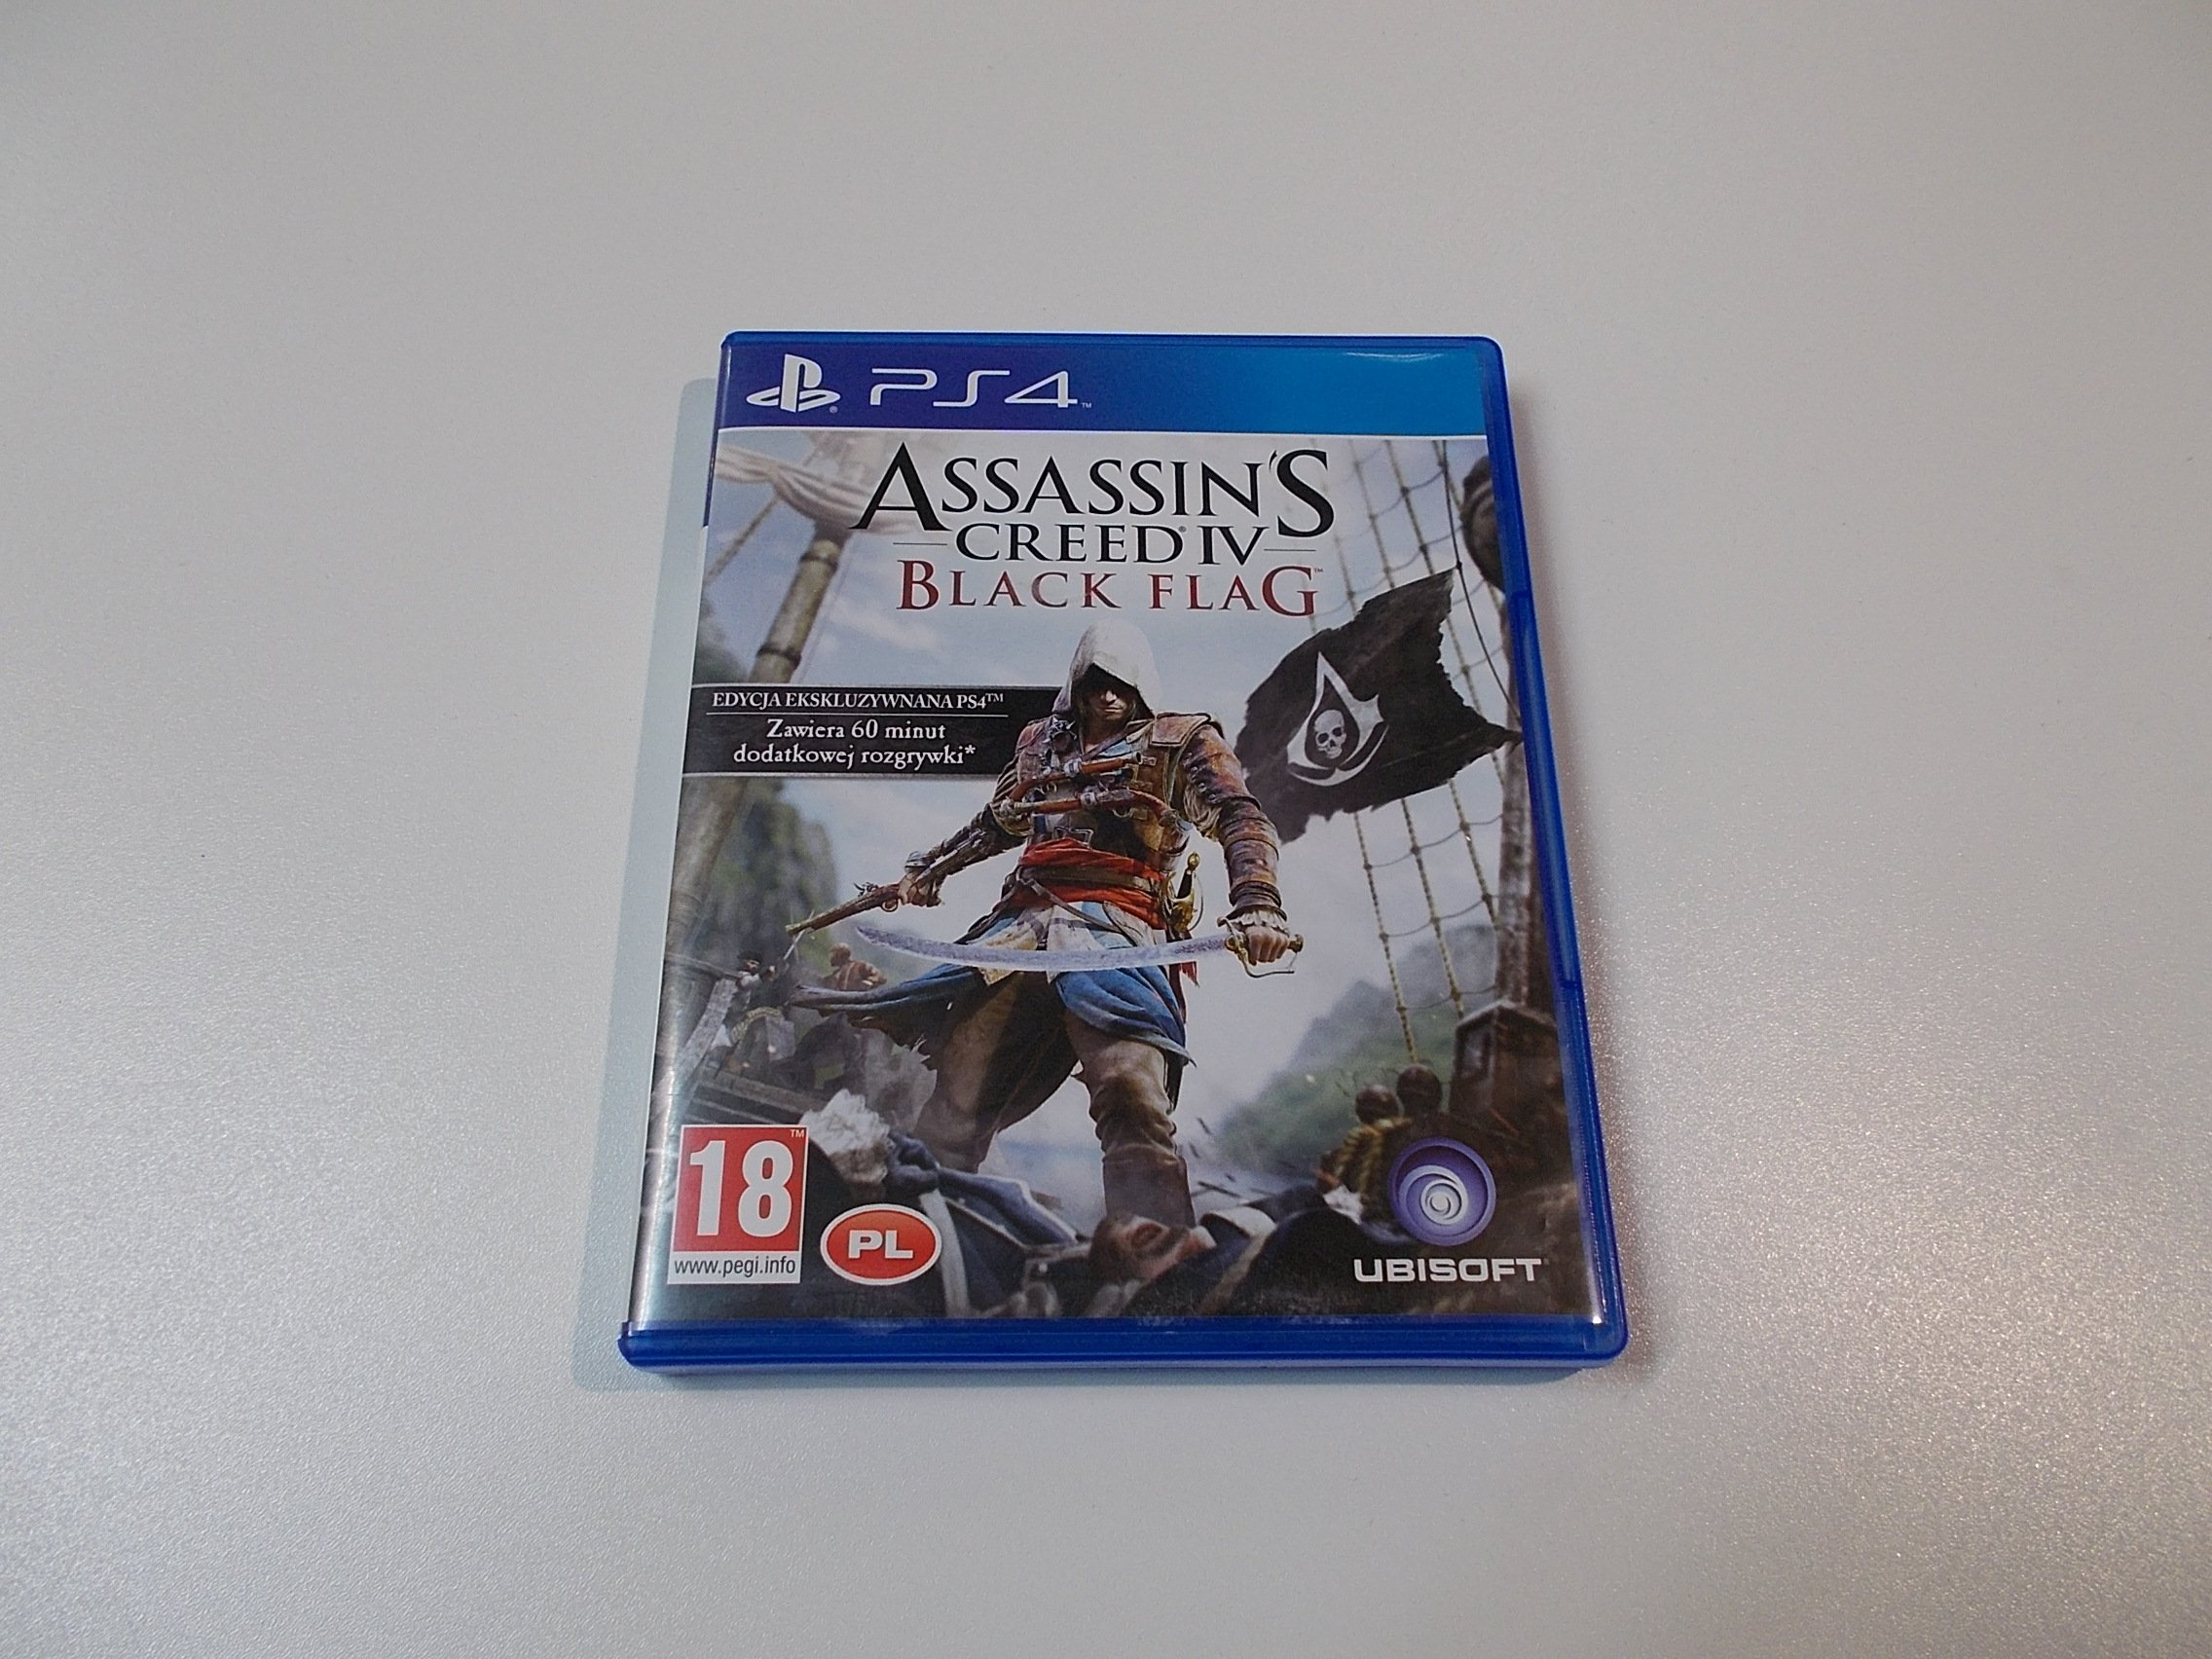 Assassins Creed IV Black Flag PL - GRA Ps4 - 0358